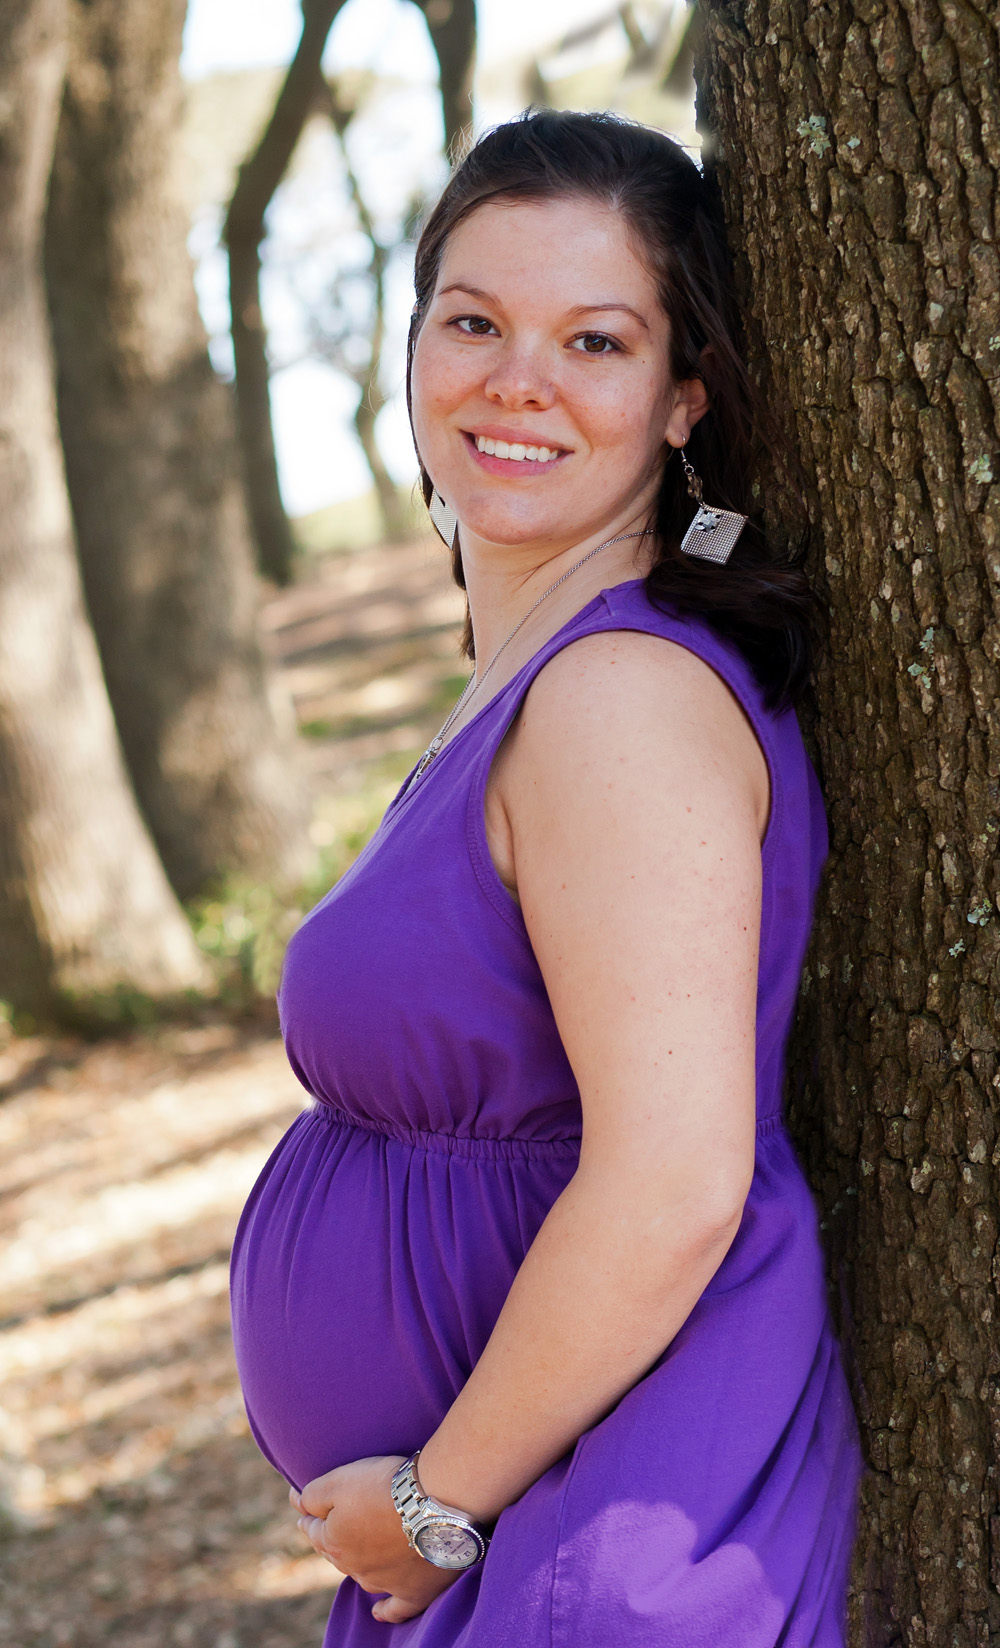 Wilmington_NC_Photographer_Tiffany_Abruzzo_Photography_Fort_Fisher_Maternity_9blog.jpg